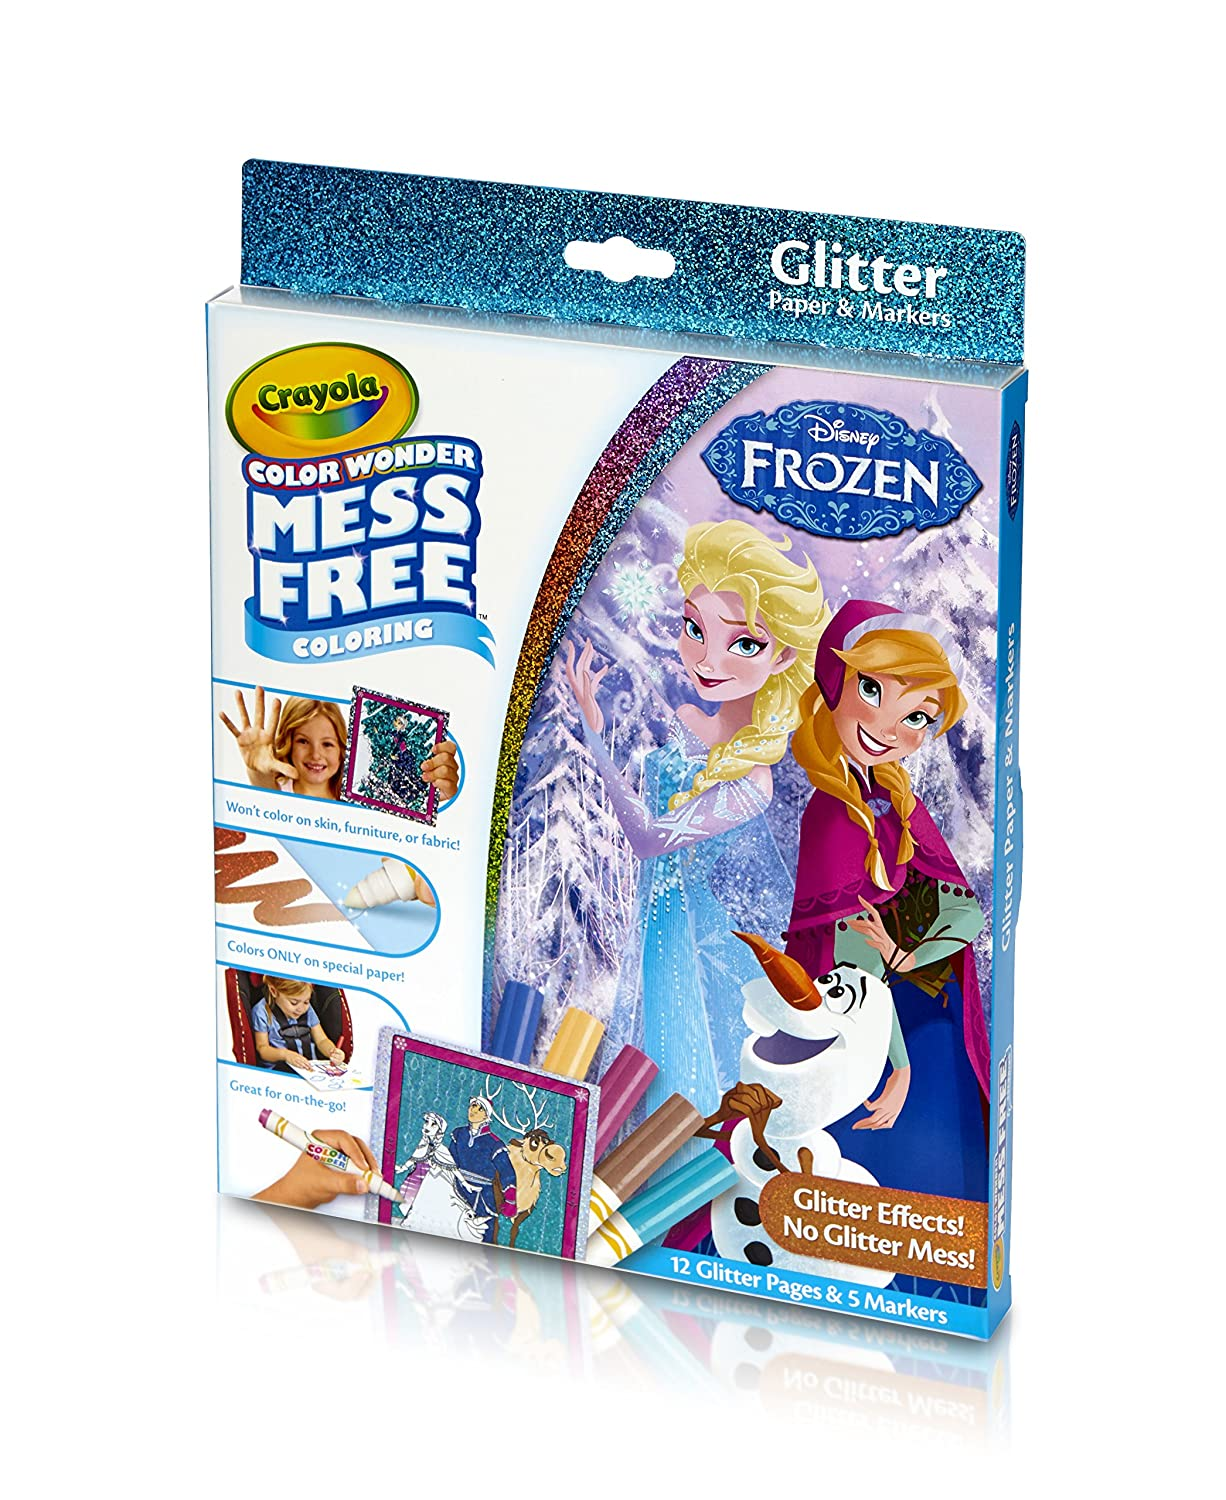 Frozen coloring pages amazon - Amazon Com Crayola Frozen Color Wonder Mess Free Coloring Glitter Paper And Markers Art Tools Great For Travel Toys Games